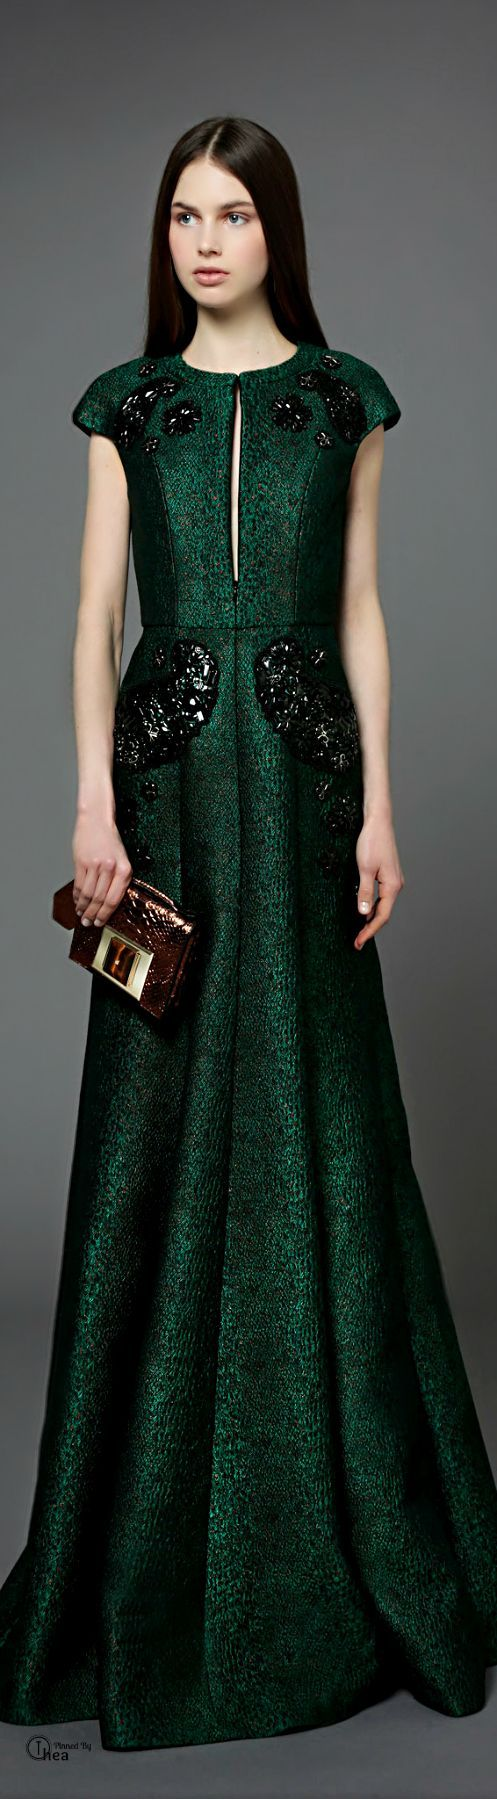 Essence of a woman | Gowns and Fancy Dresses | Pinterest | Gowns ...